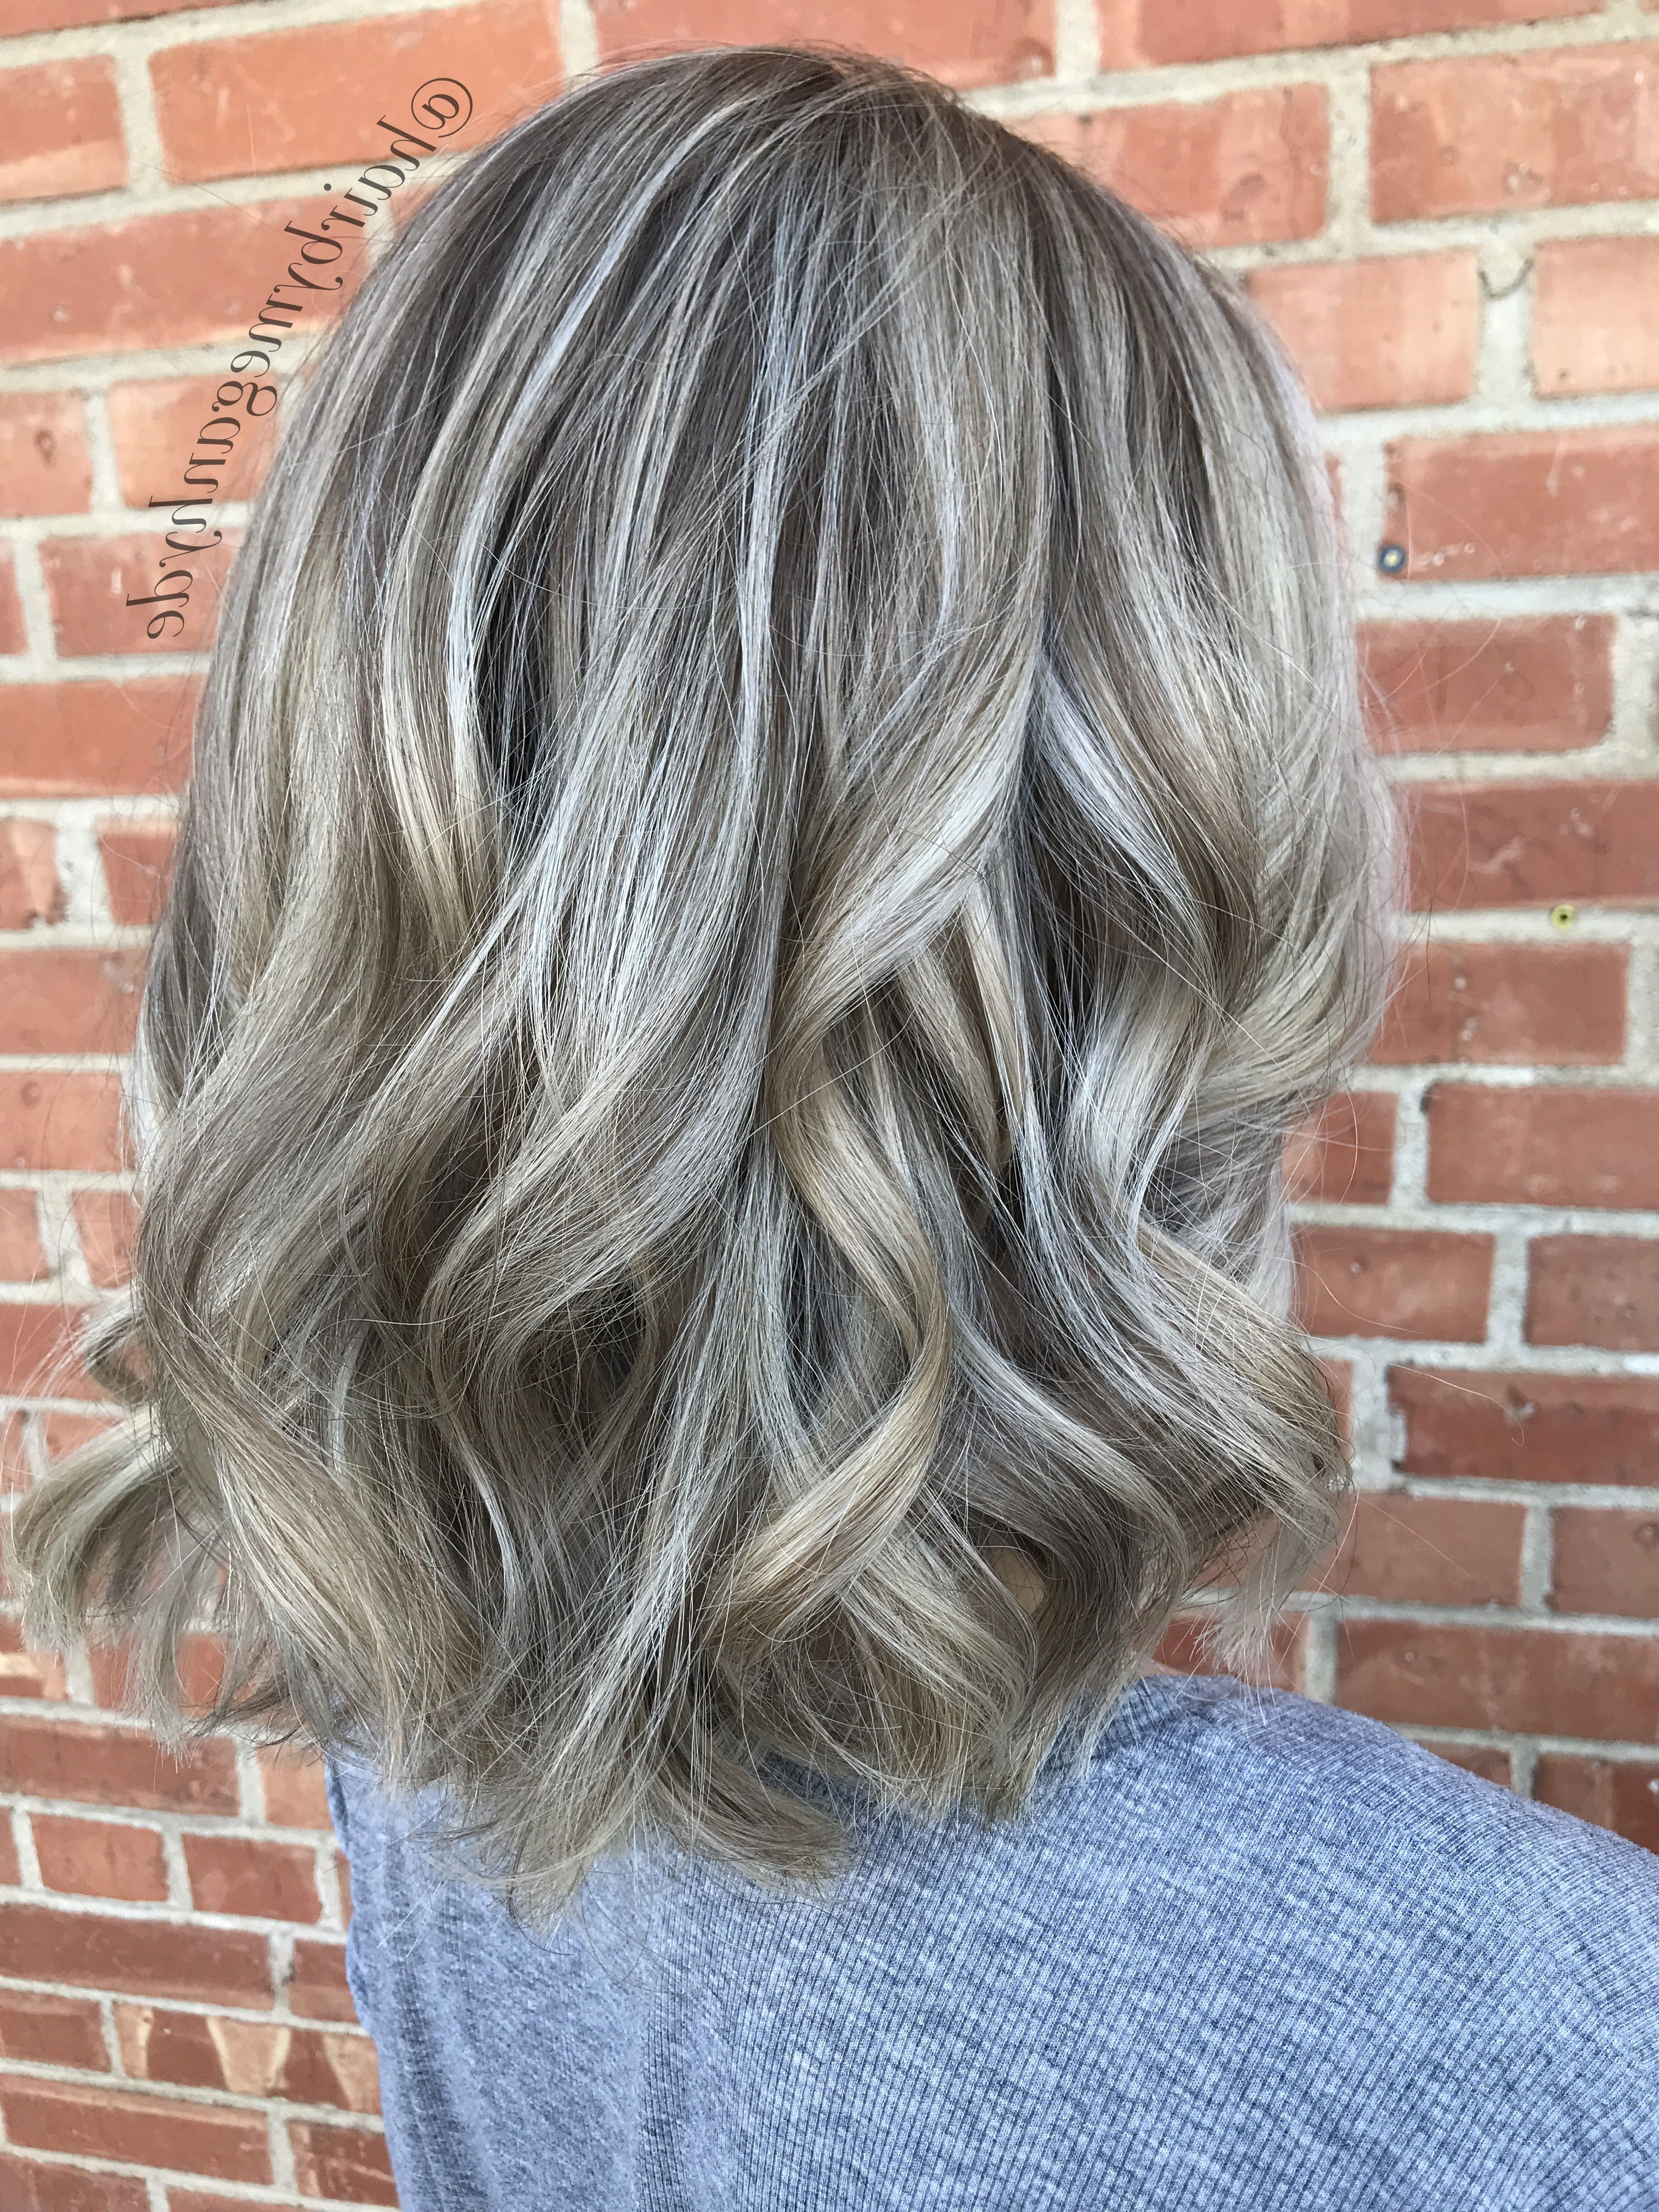 Recent Tortoiseshell Curls Blonde Hairstyles For Dimensional Blonde Balayage #blonde #hair #balayage #dimensional (Gallery 10 of 20)